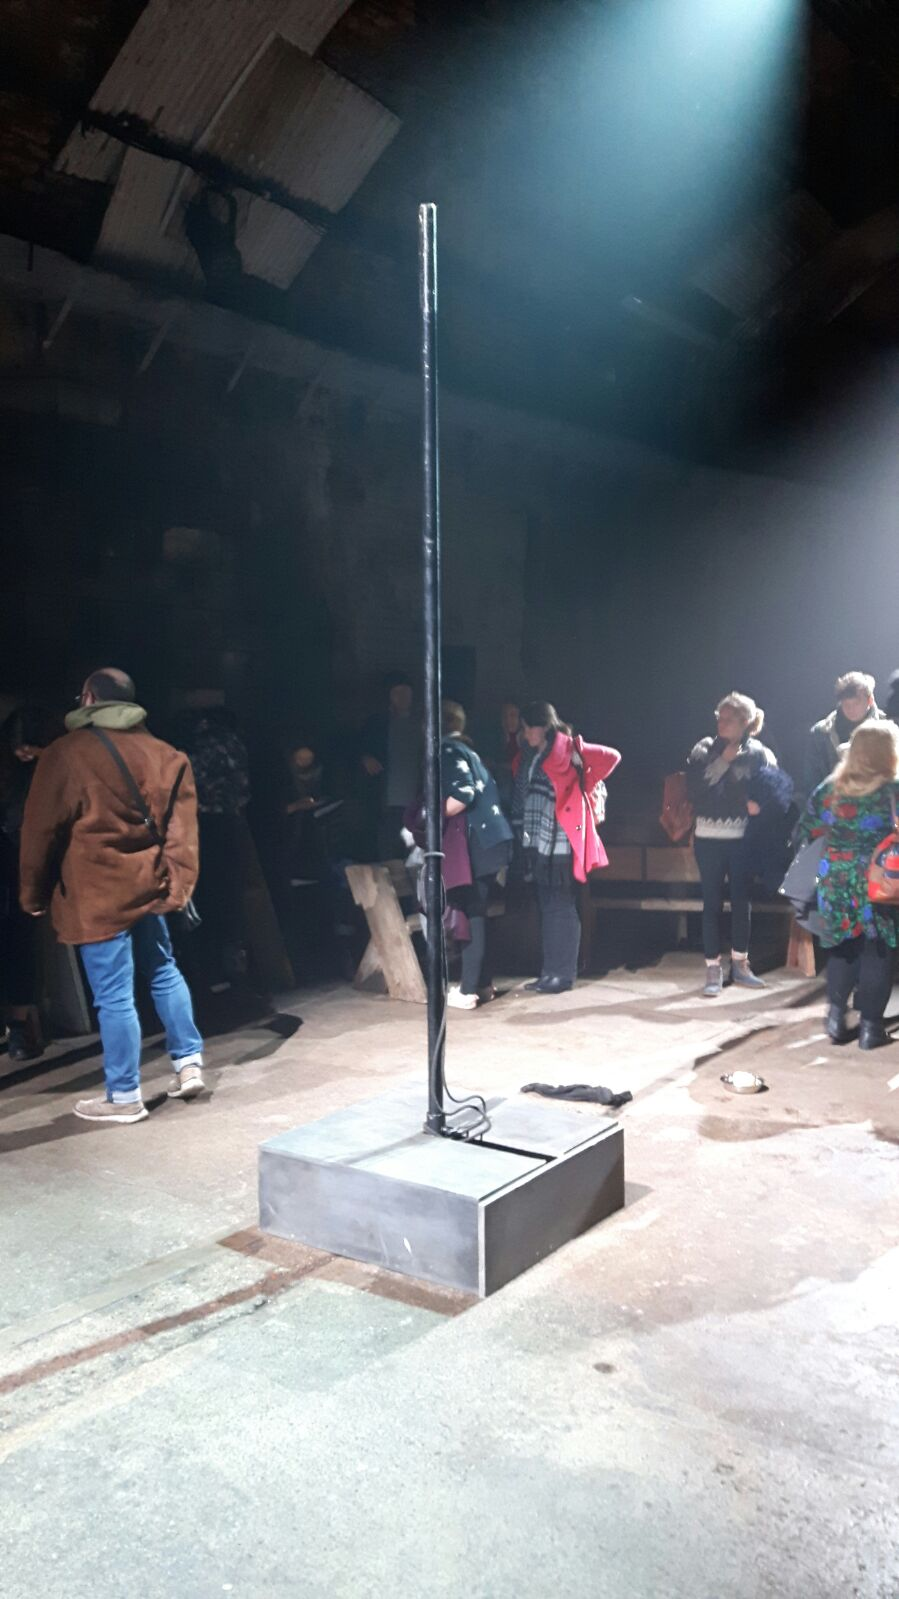 The pole our soldier is tied to at the start of the show and also the set